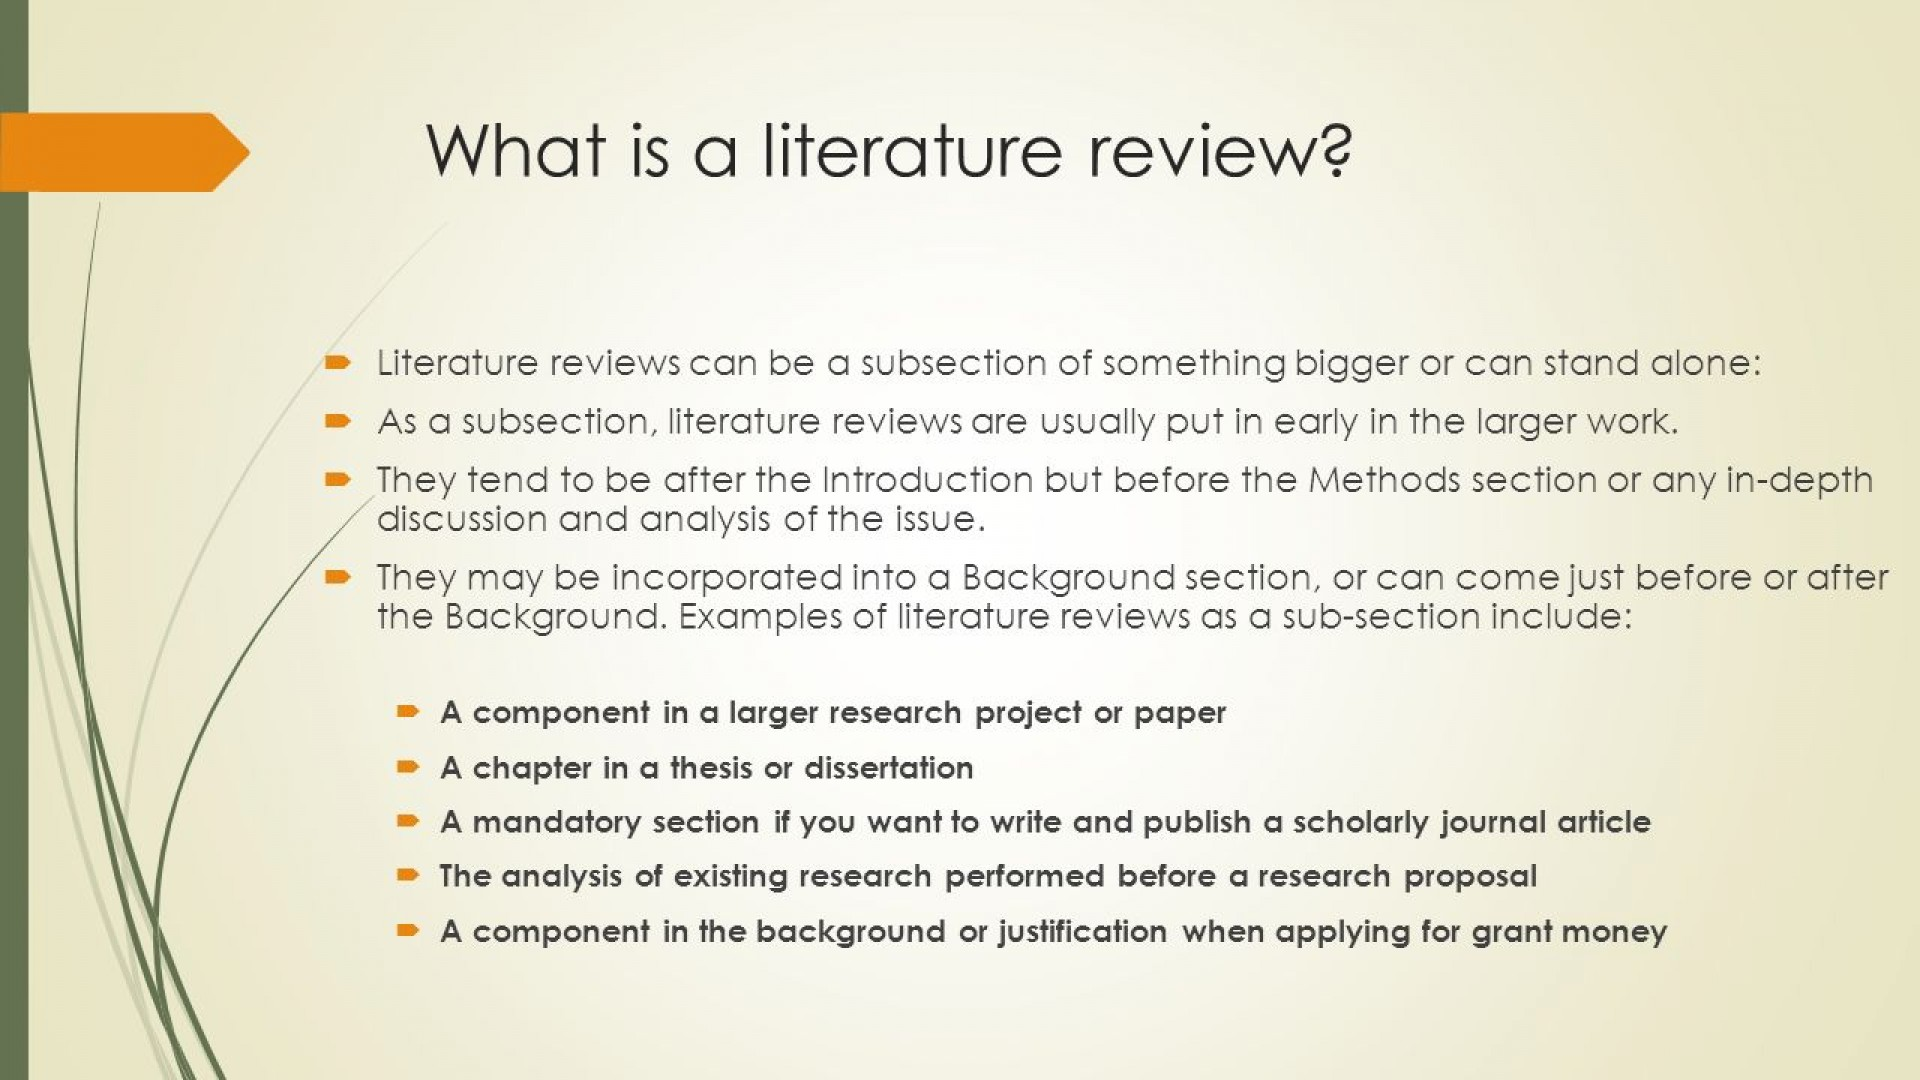 005 Slide 3 Define Literature Review In Research Remarkable Paper Definition Of What Is Pdf 1920